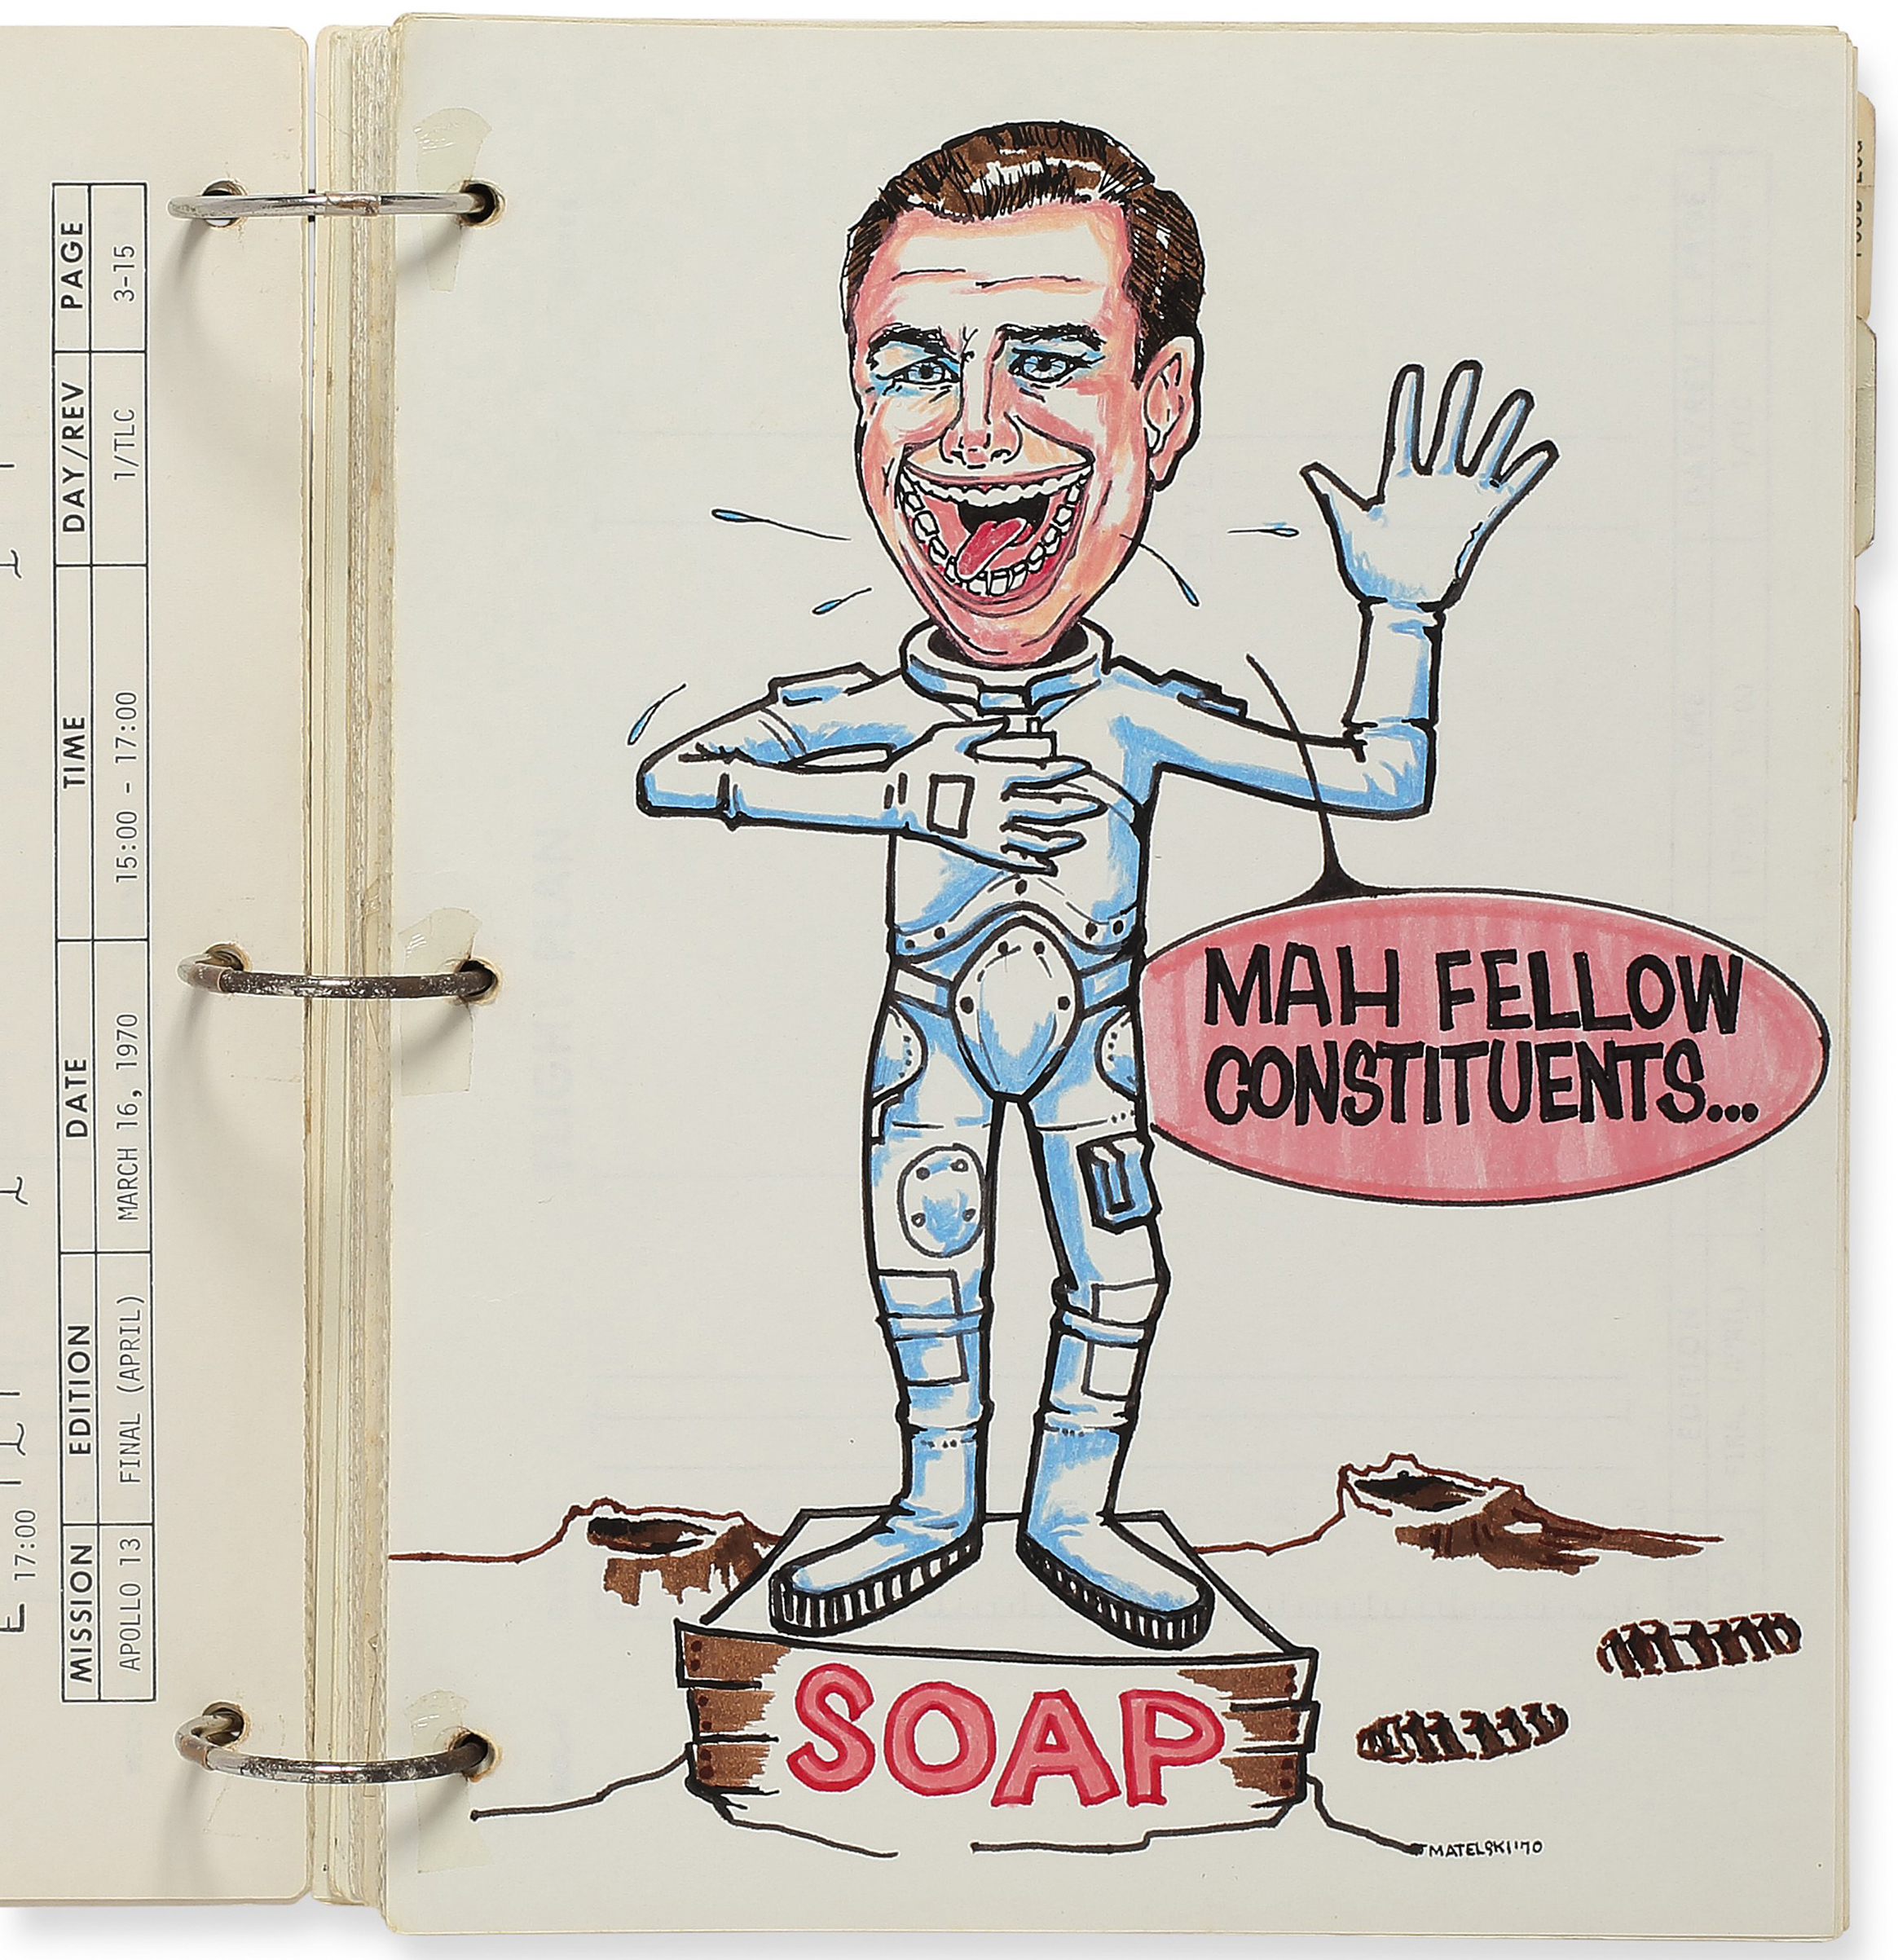 This caricature of Apollo 13 Command Module Pilot Jack Swigert was drawn into the Apollo 13 Flight Plan—one of several that Johnson Space Centre artist Barbara Matelski created as a surprise for the flight crew. Swigert successfully ran for Congress after his days as an astronaut, but died due to cancer before he could serve.